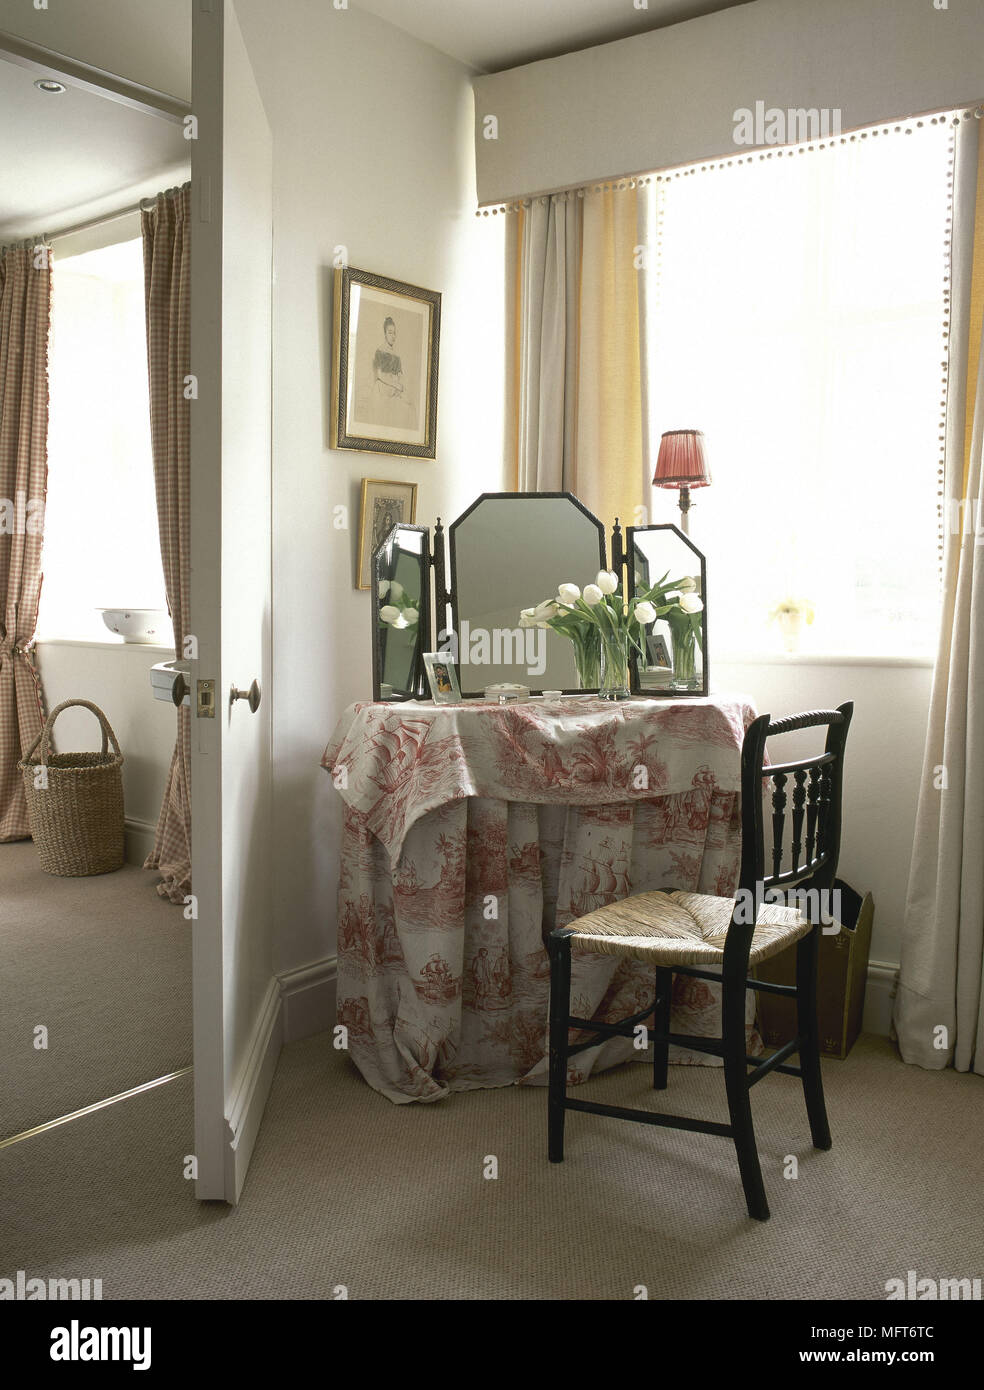 Bedroom Detail With Dressing Table Covered In Red Toile De Jouy Fabric